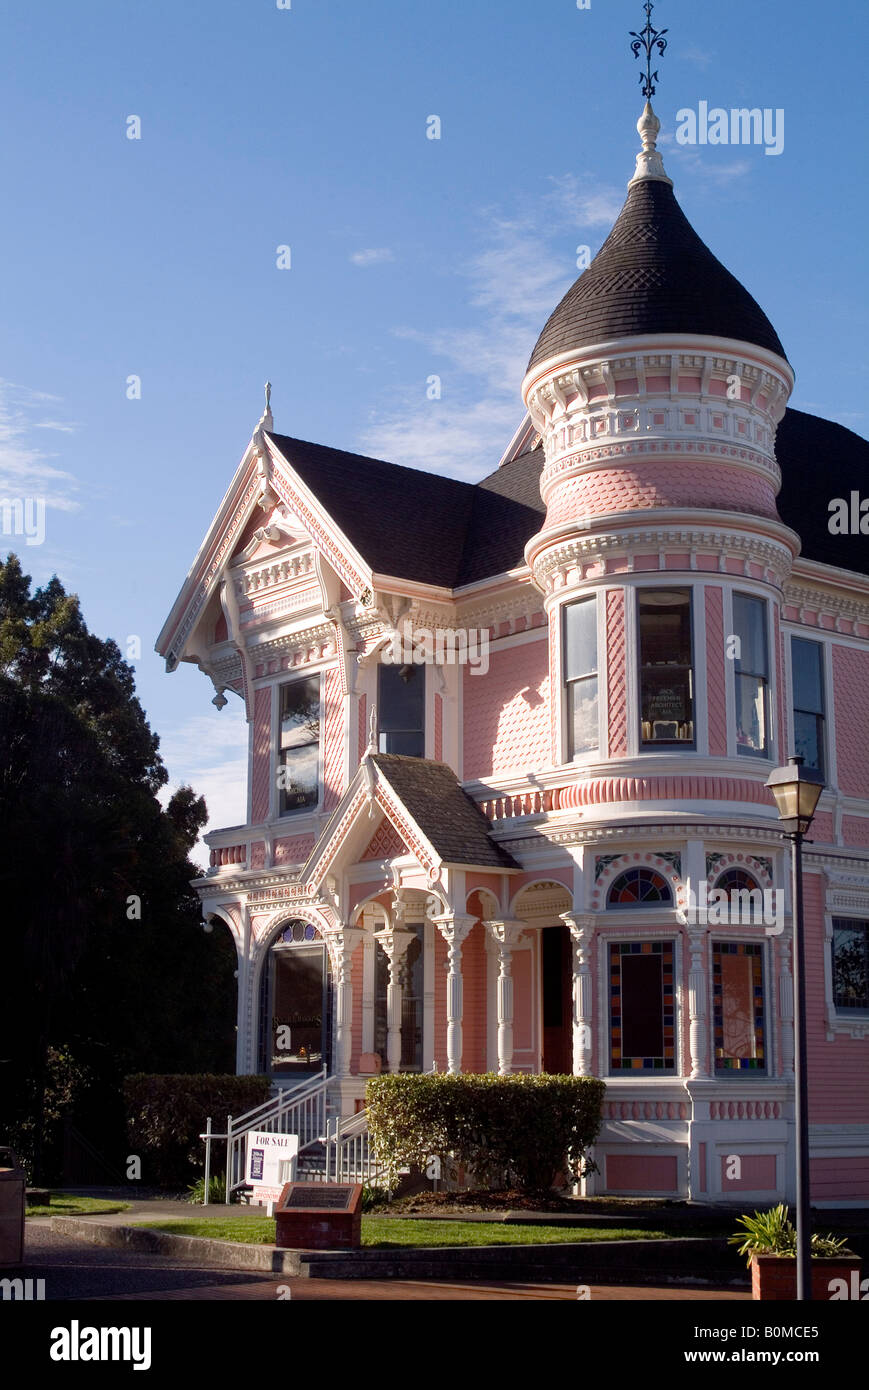 The Carson Mansion House, Eureka, California, USA. - Stock Image